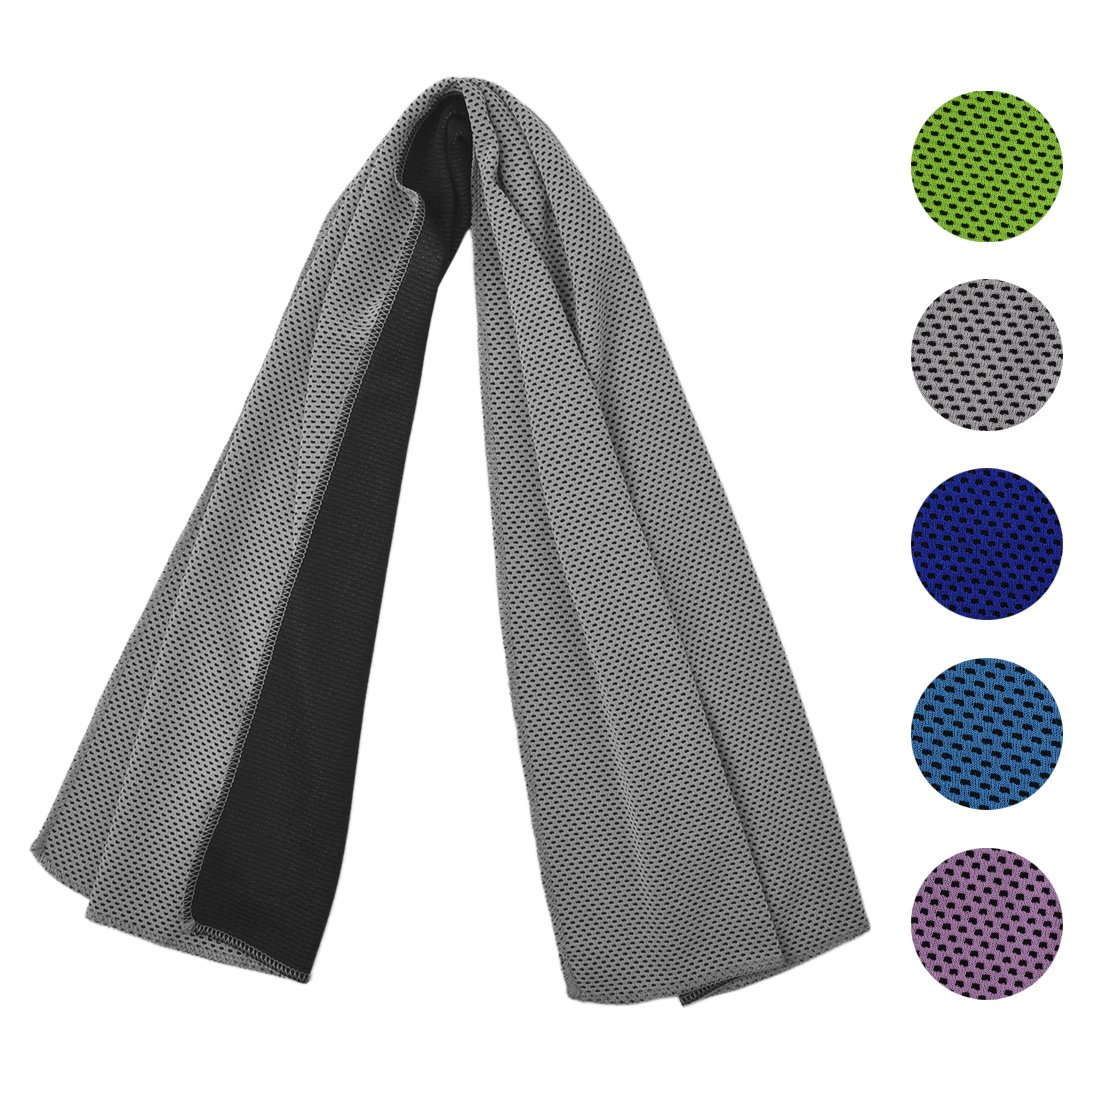 Fidget Toy Cooling Towel for Sports, Workout, Fitness, Gym, Yoga, Pilates, Travel, Camping & More, Ice cold, Camouflage, multi colors (BP-Gray)